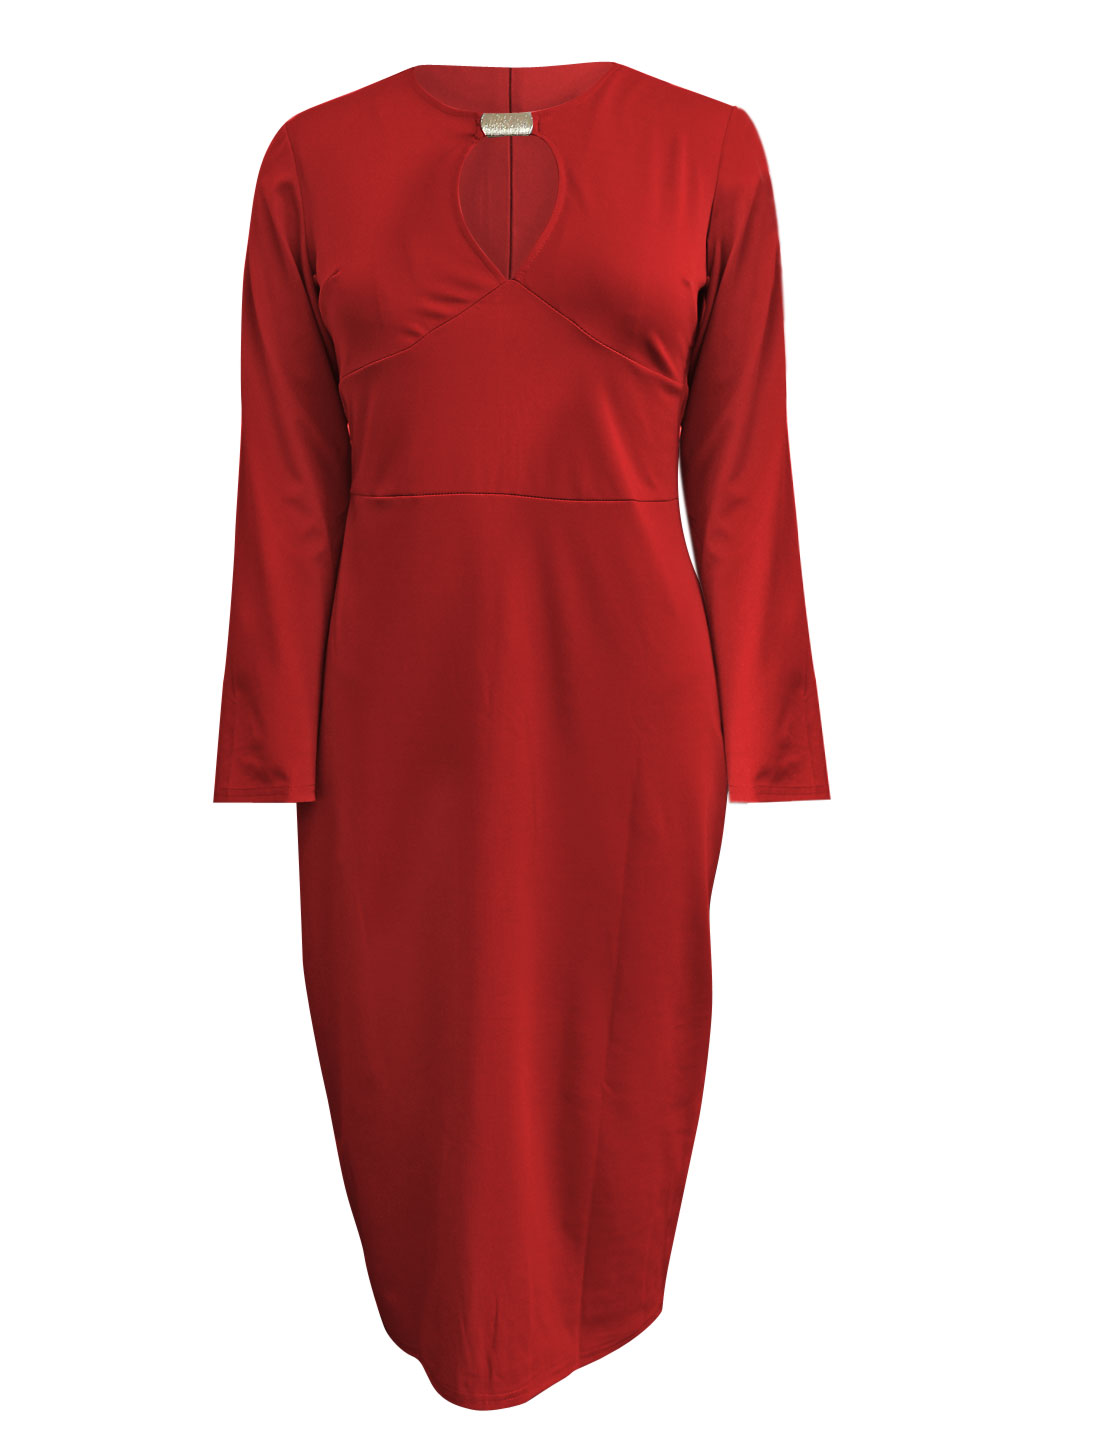 Ladies Overhip Design Long Sleeves Red Sheath Dress L